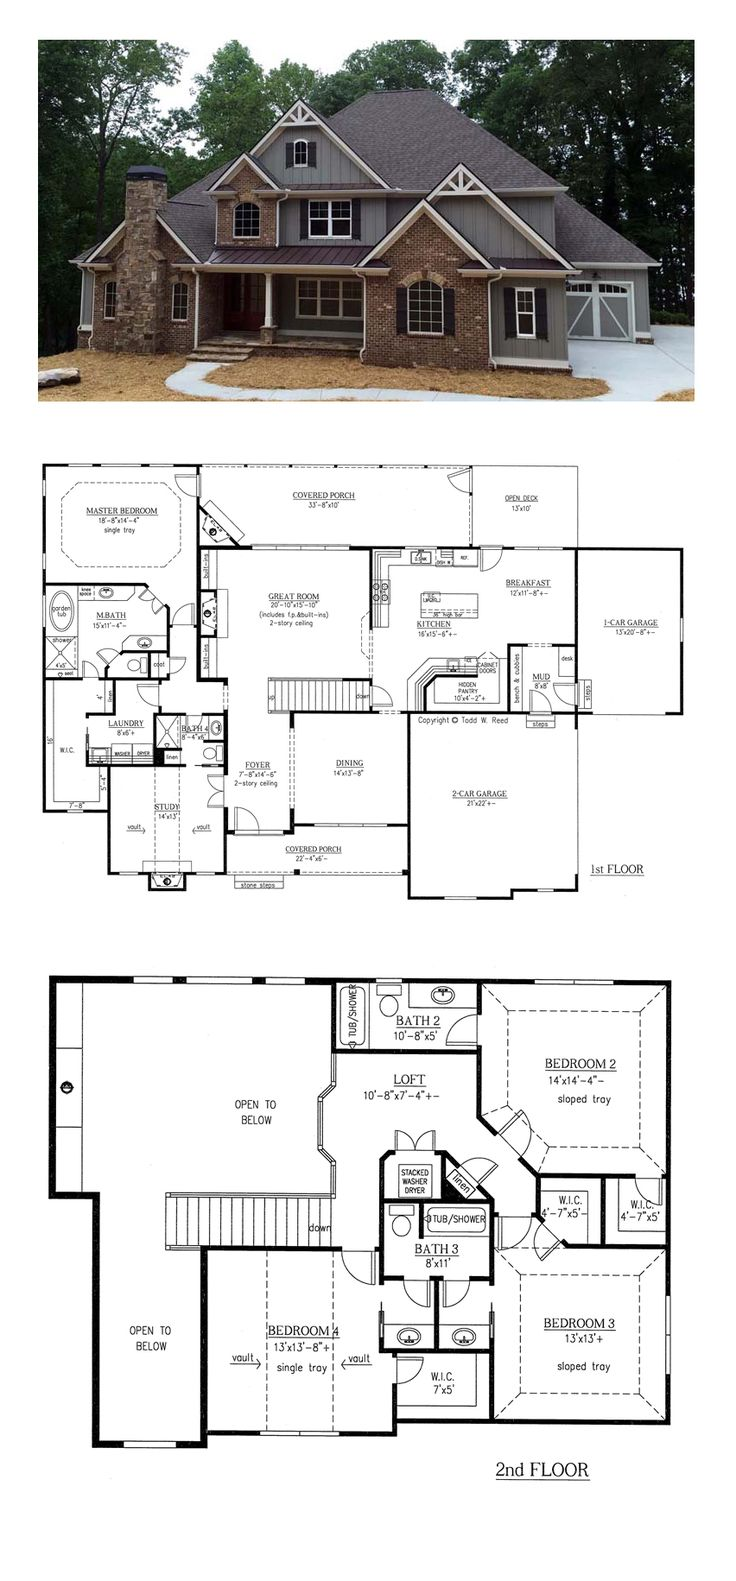 cottage house plans - House Floor Plans